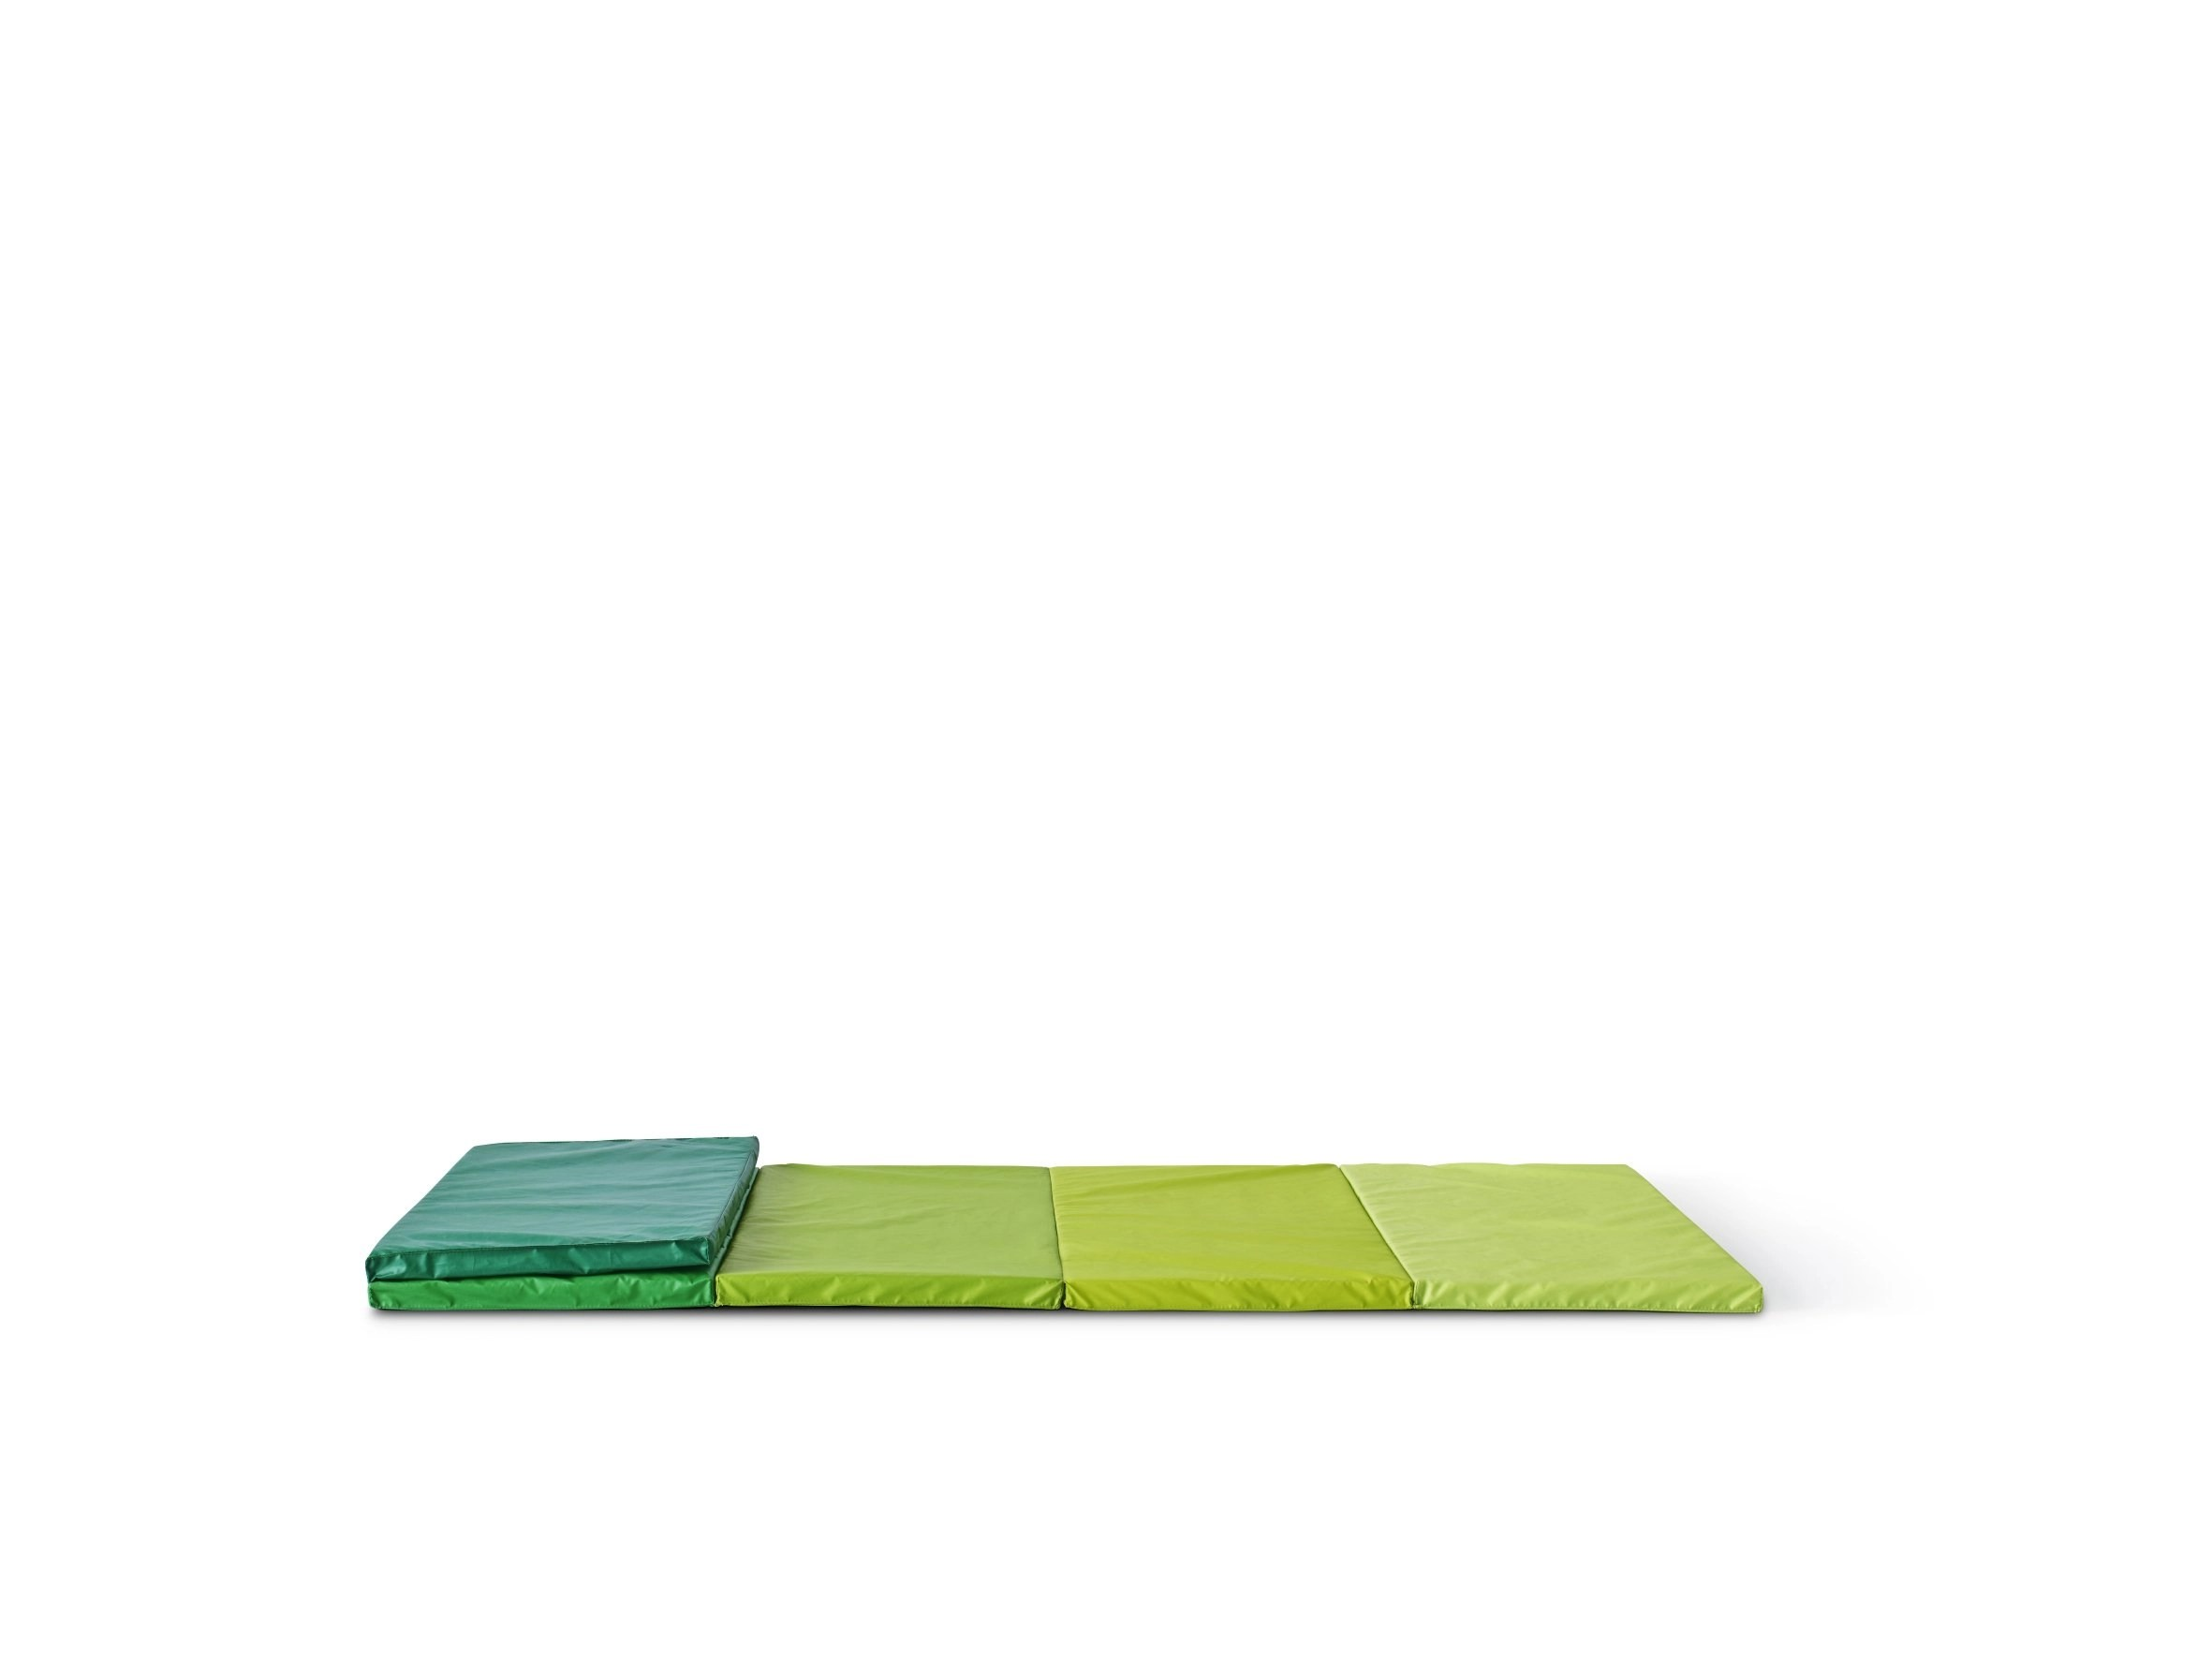 ikea plufsig folding gym mat ikea gym mat ikea toys daisies and pie